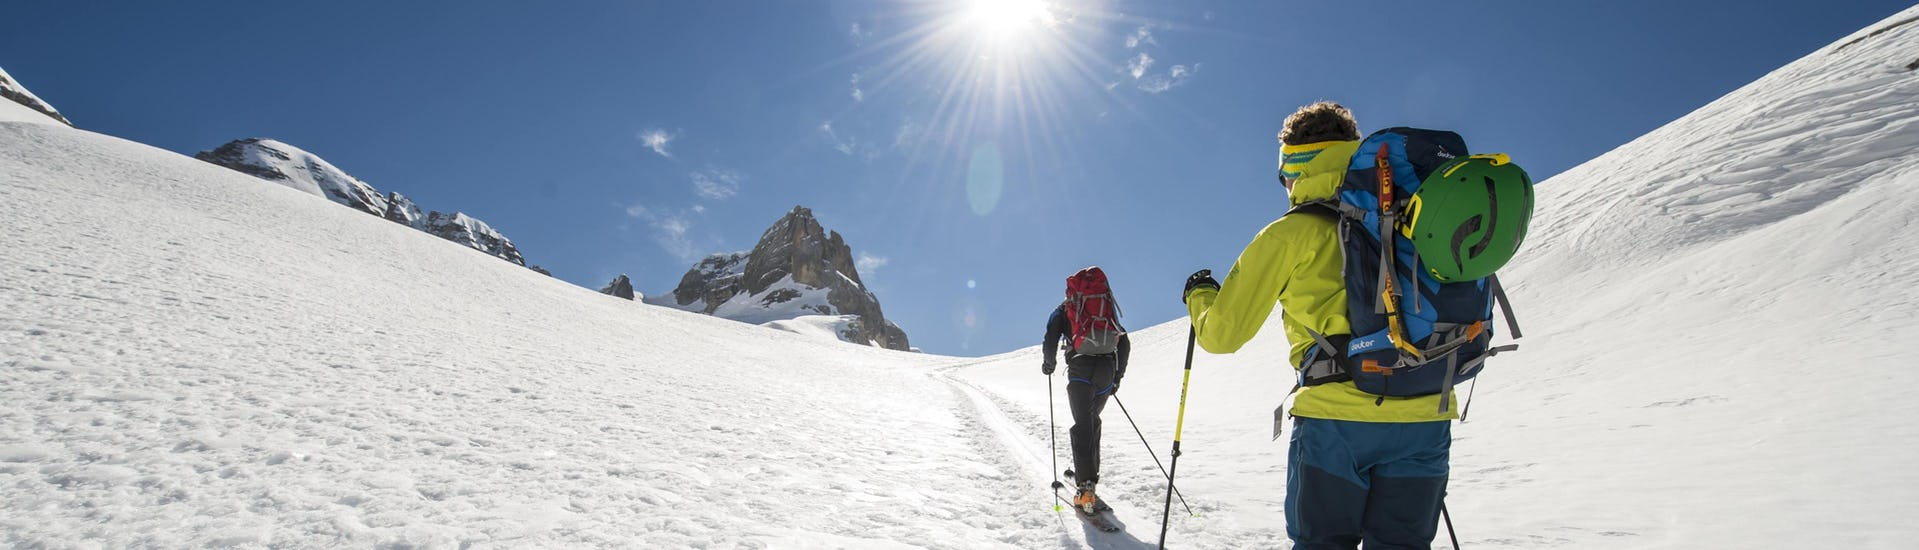 A ski touring guide is guiding another skier to the mountain summit while on a ski tour in the ski resort of Klínovec.